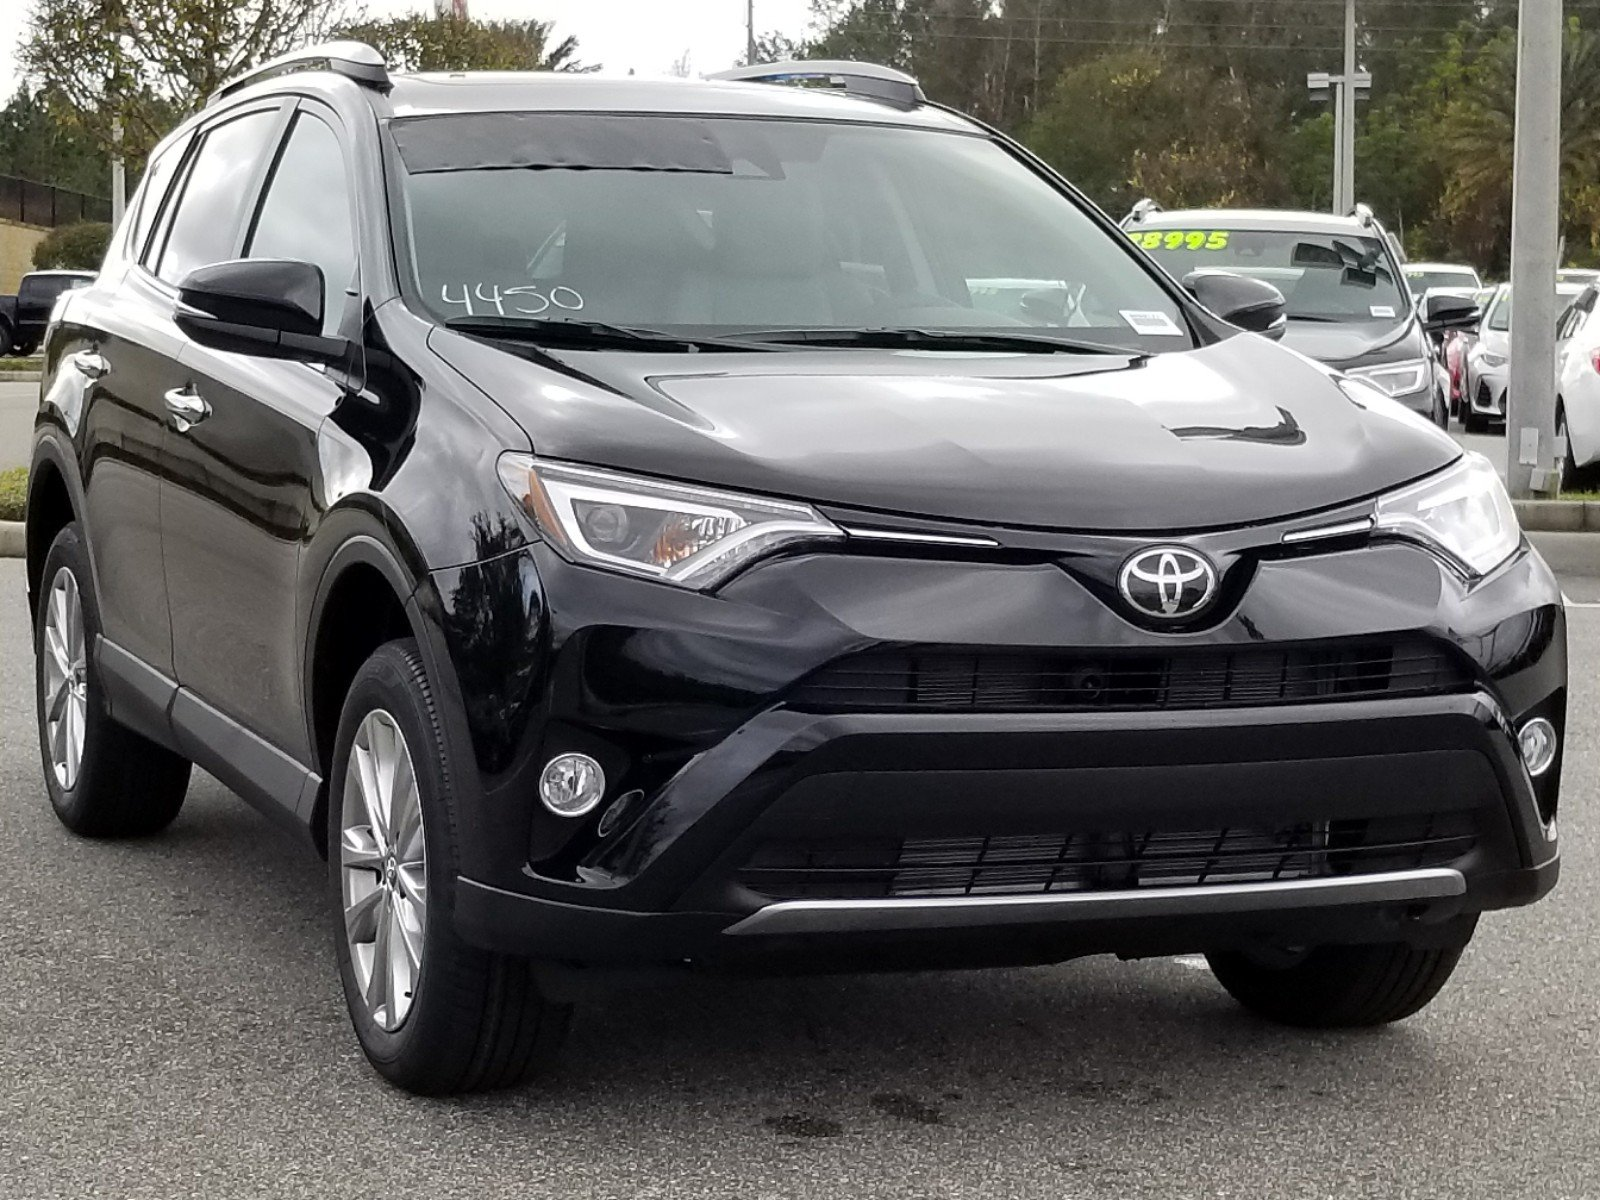 Toyota Tacoma 2015-2018 Service Manual: Portable Player cannot be Connected ManuallyAutomatically